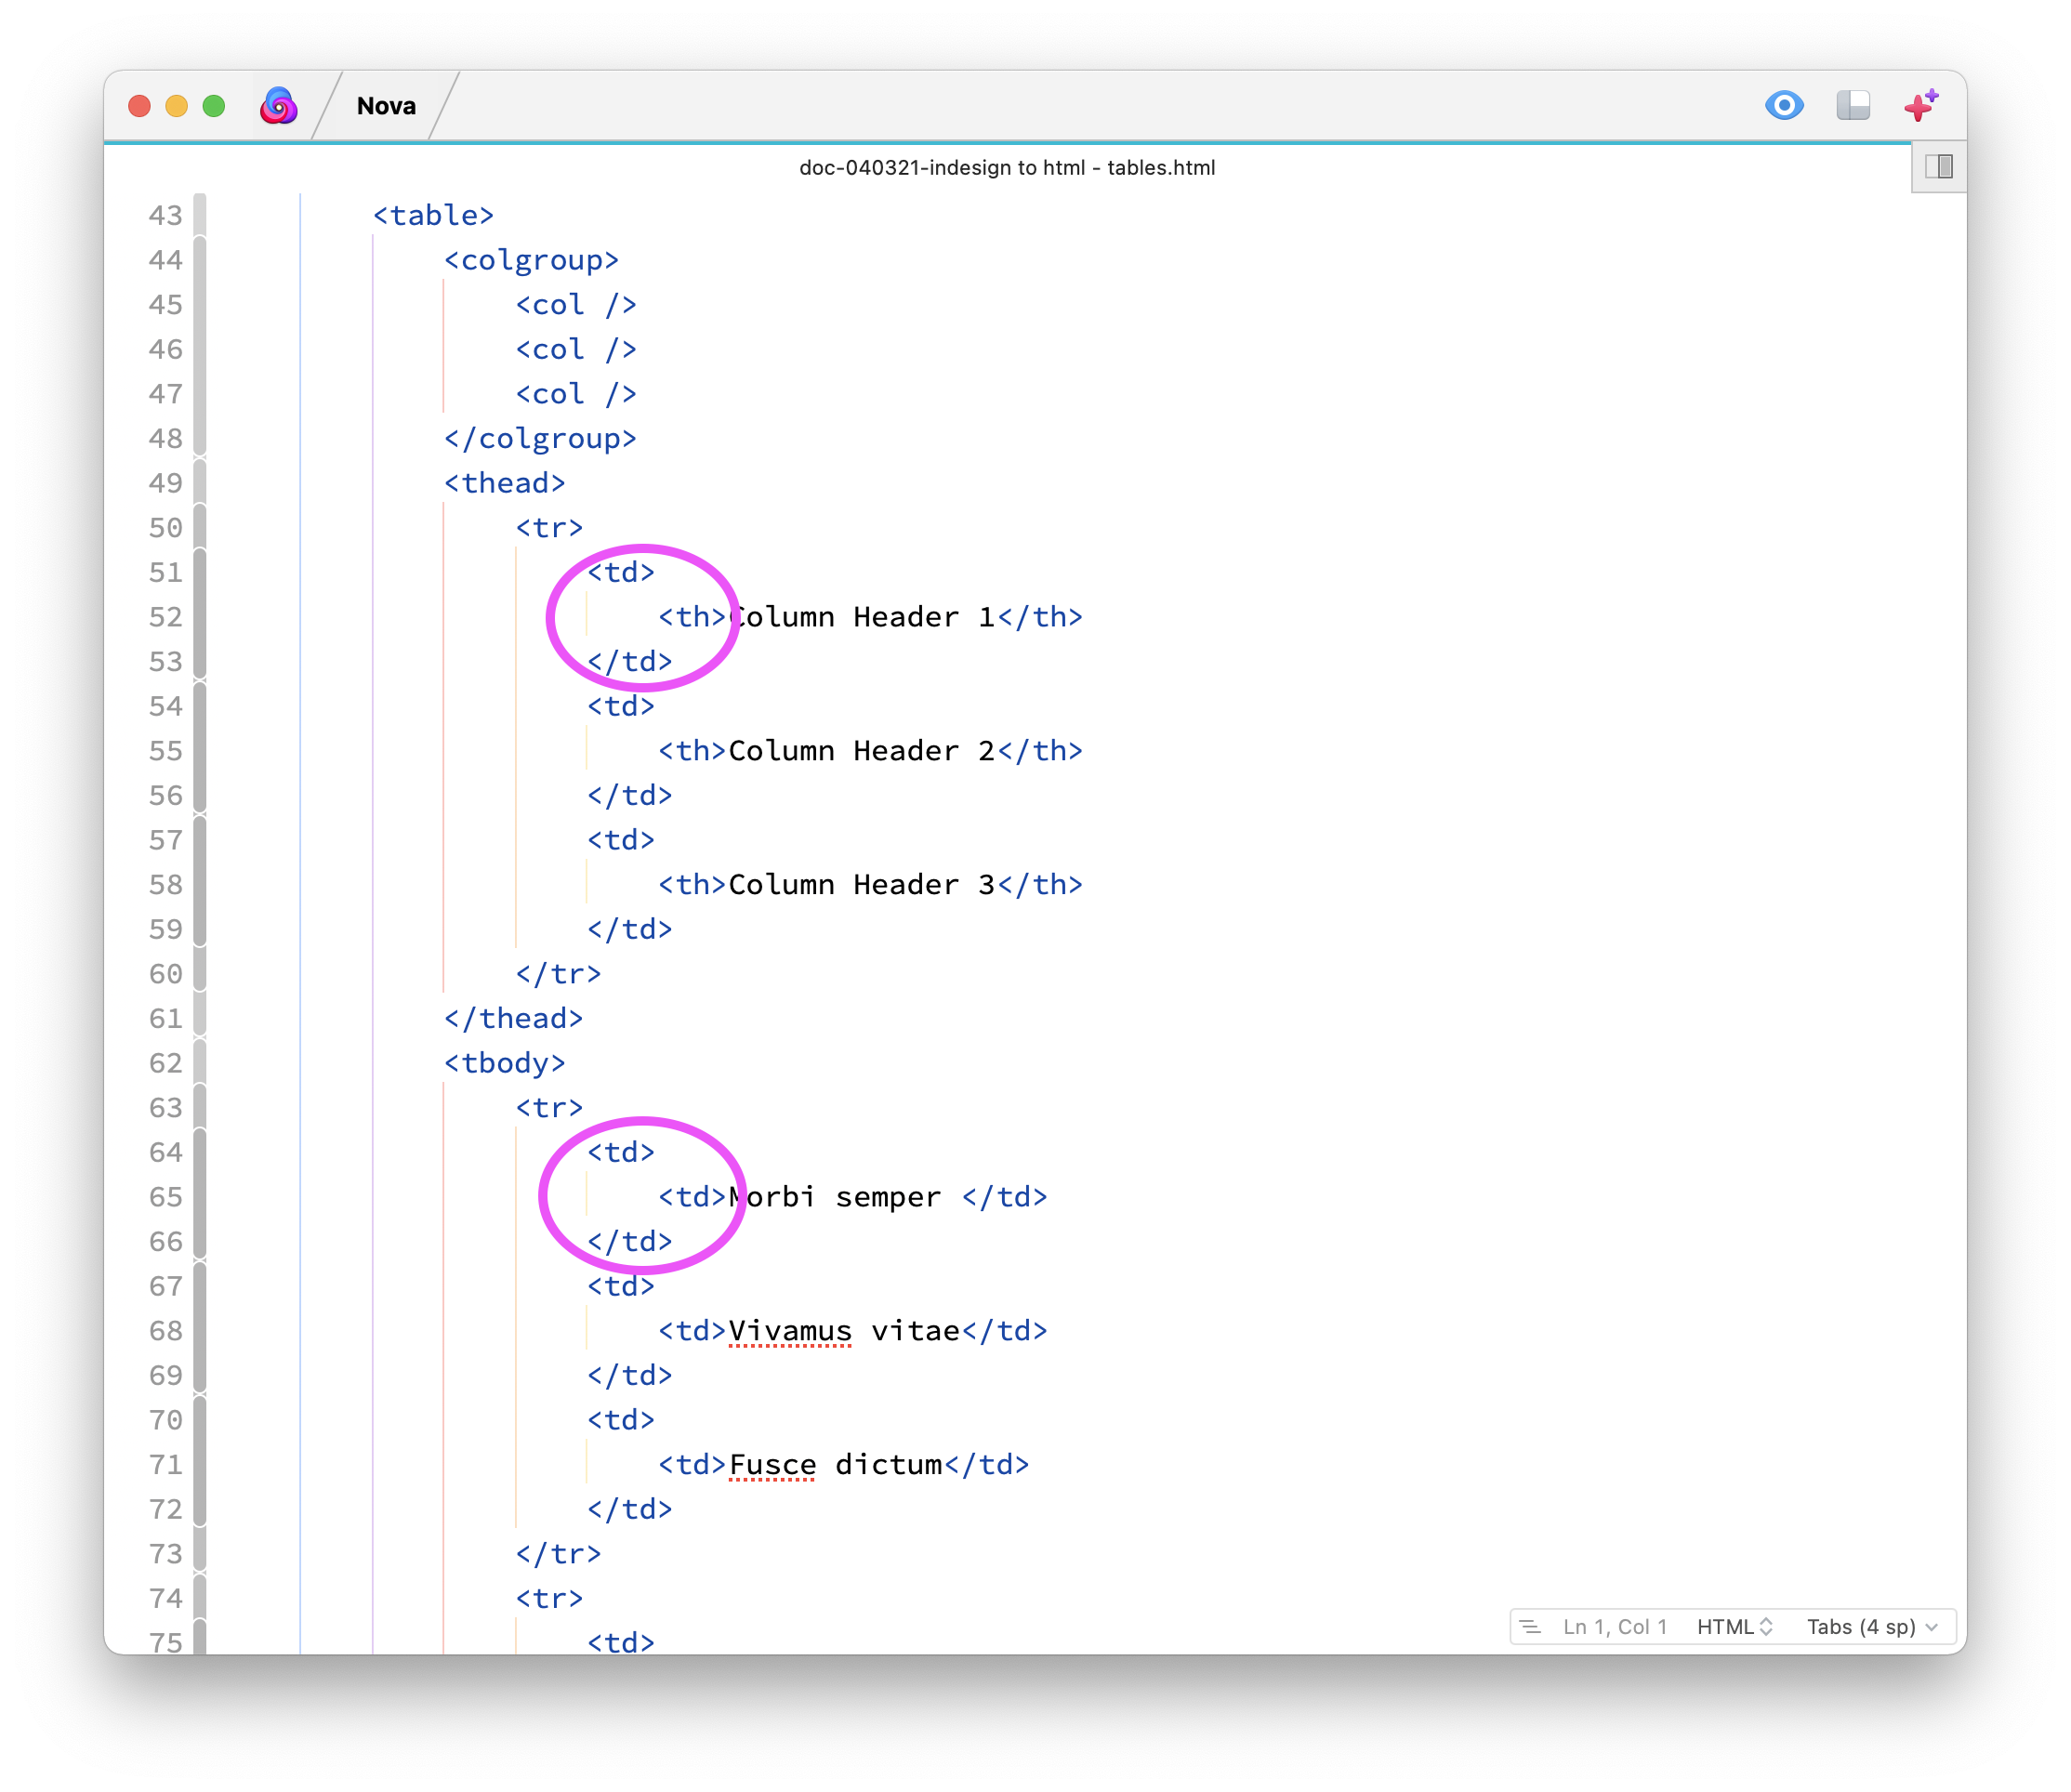 The <th> and <td> tags are duplicated because I mapped the paragraph styles to them.